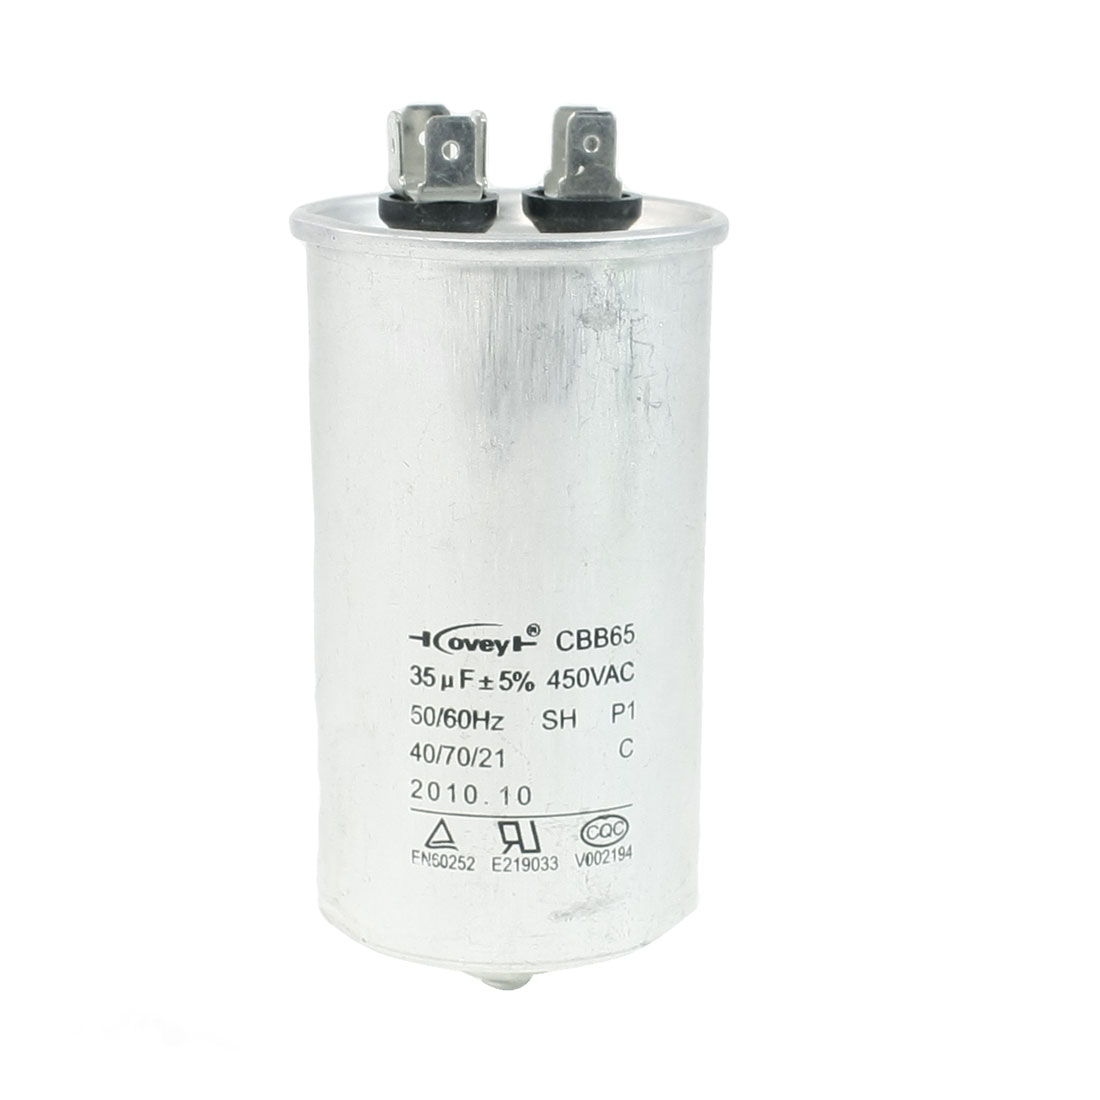 Air Conditioner AC 450V 35uF Cylindrical Motor Capacitor CBB65